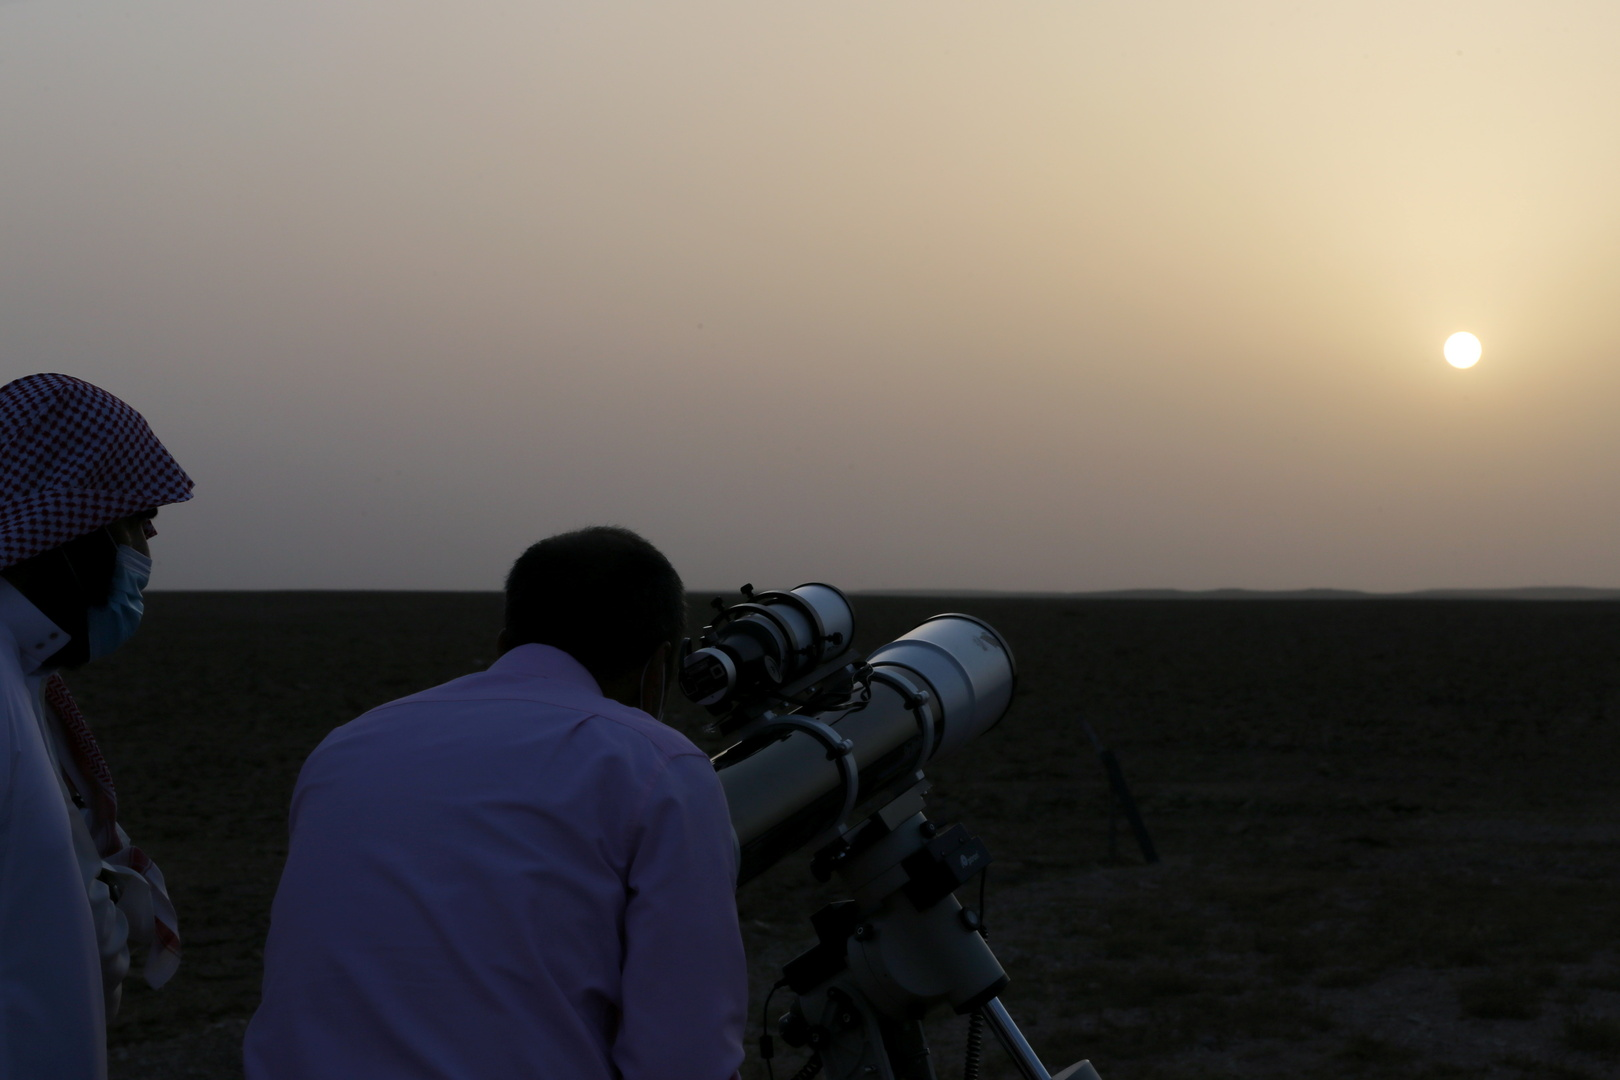 Astronomical community in Jeddah: Saudi Arabia's sky and the Arab world see the closest connection between the two planets